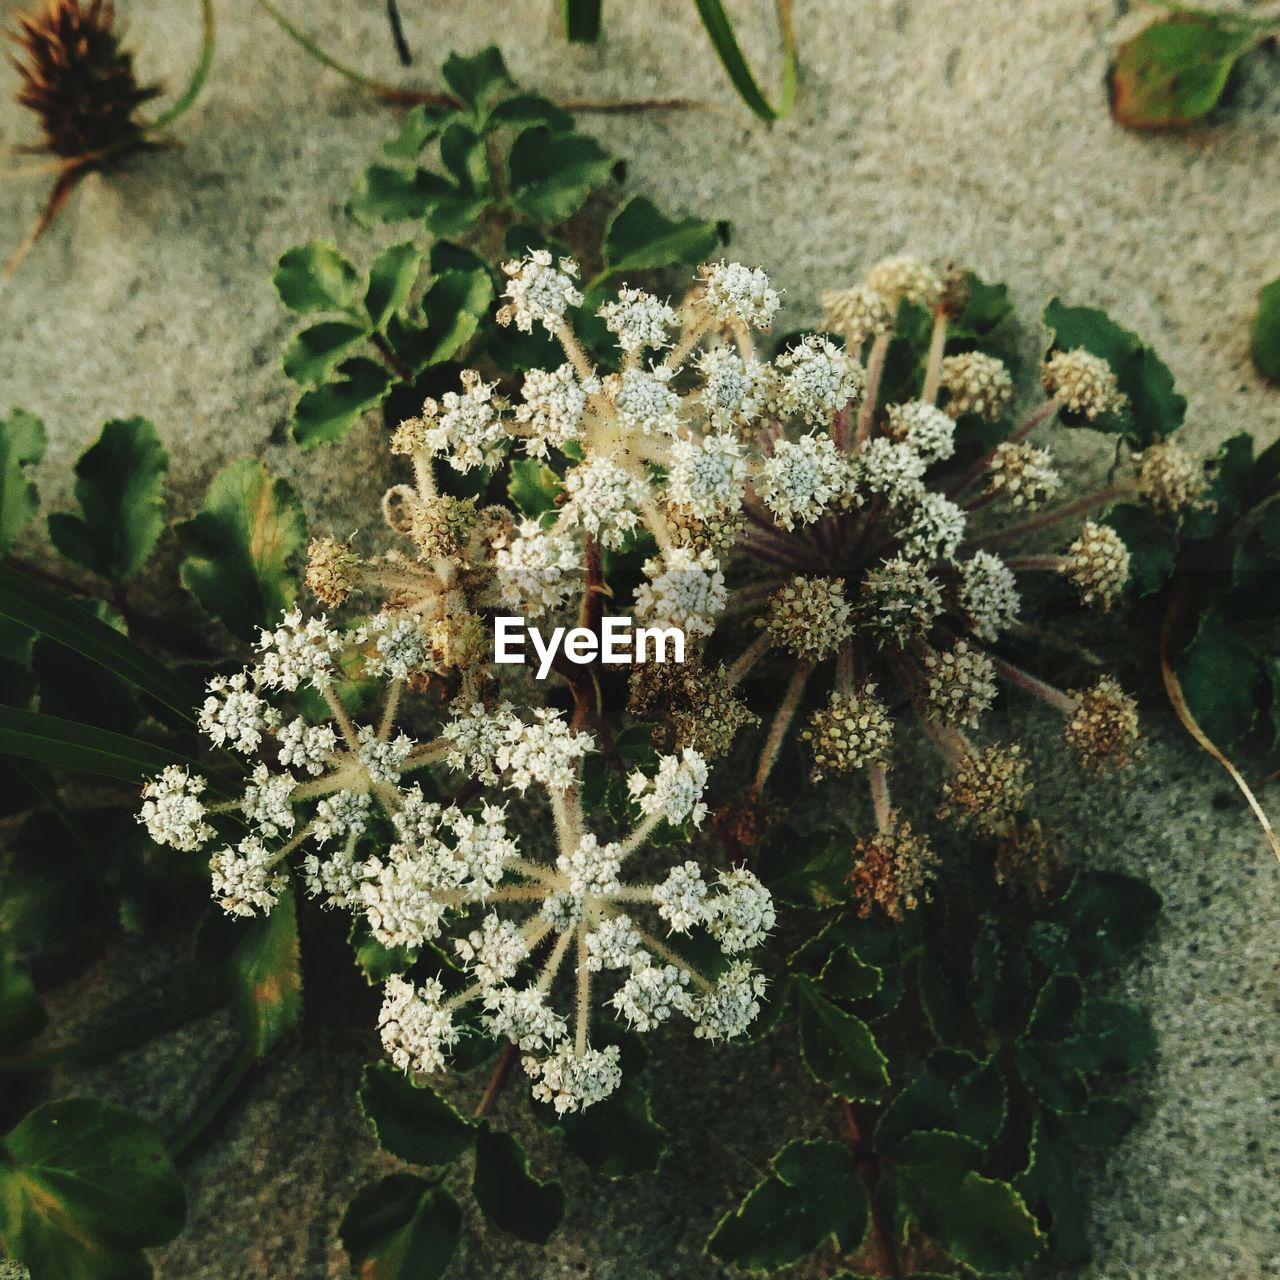 plant, close-up, growth, nature, no people, beauty in nature, day, flower, green color, flowering plant, outdoors, focus on foreground, leaf, selective focus, fragility, cold temperature, high angle view, vulnerability, plant part, winter